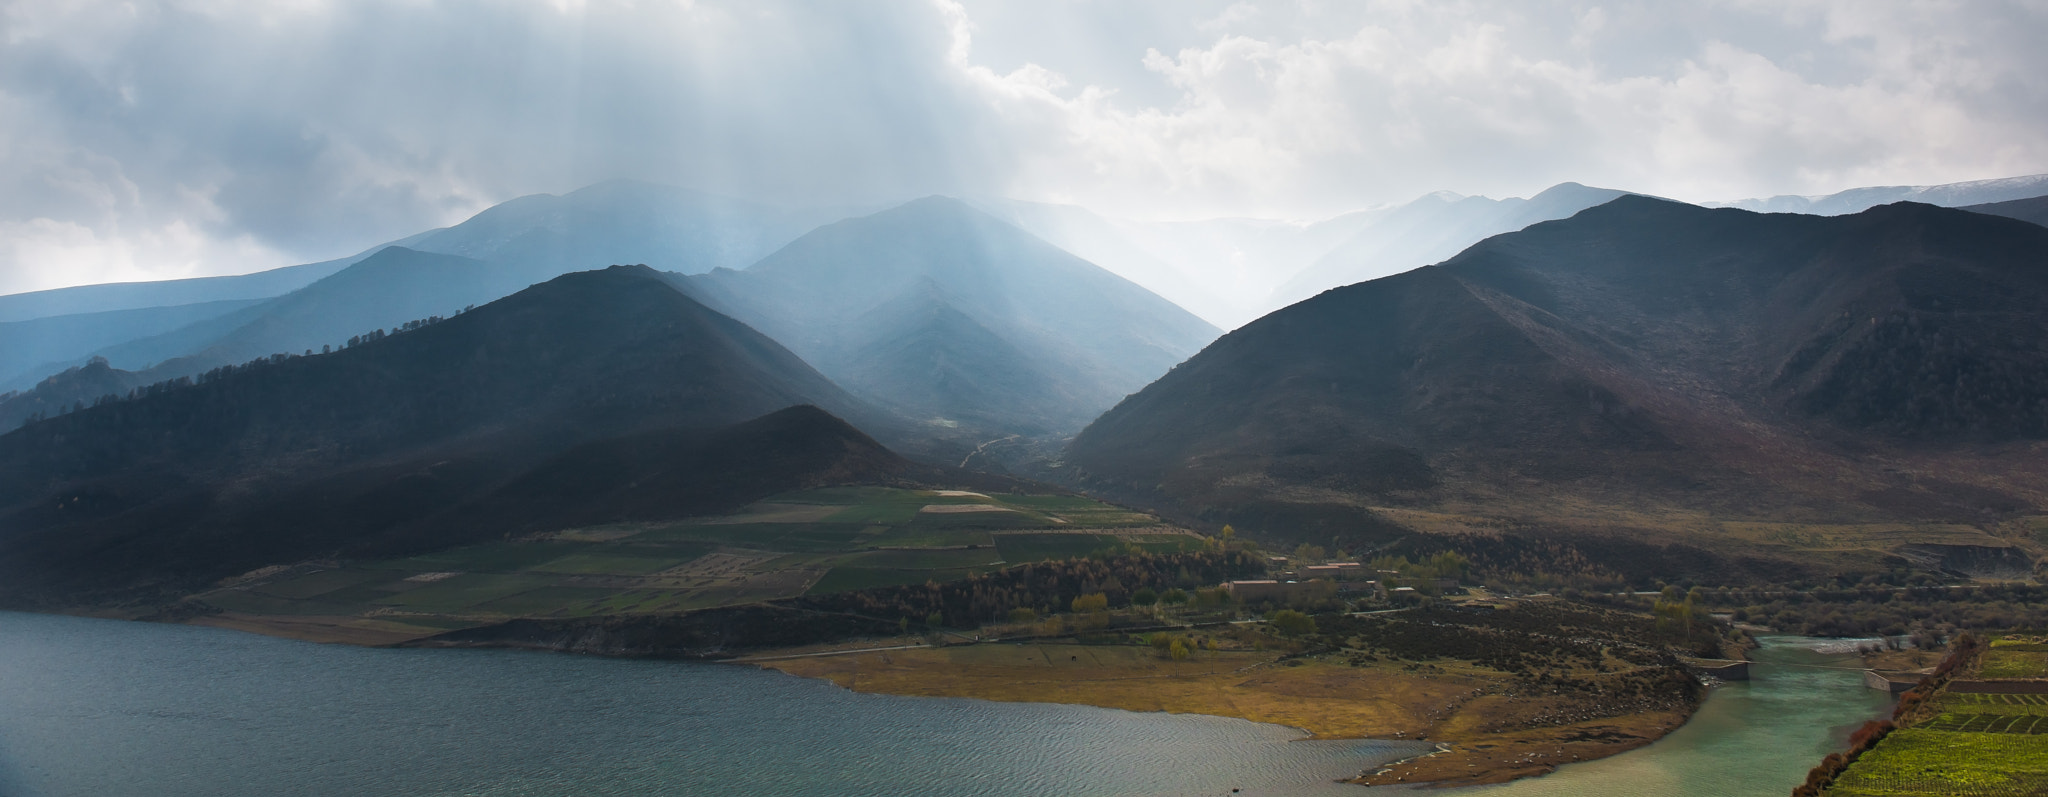 Photograph Light in the Valley by Evgeny Tchebotarev on 500px